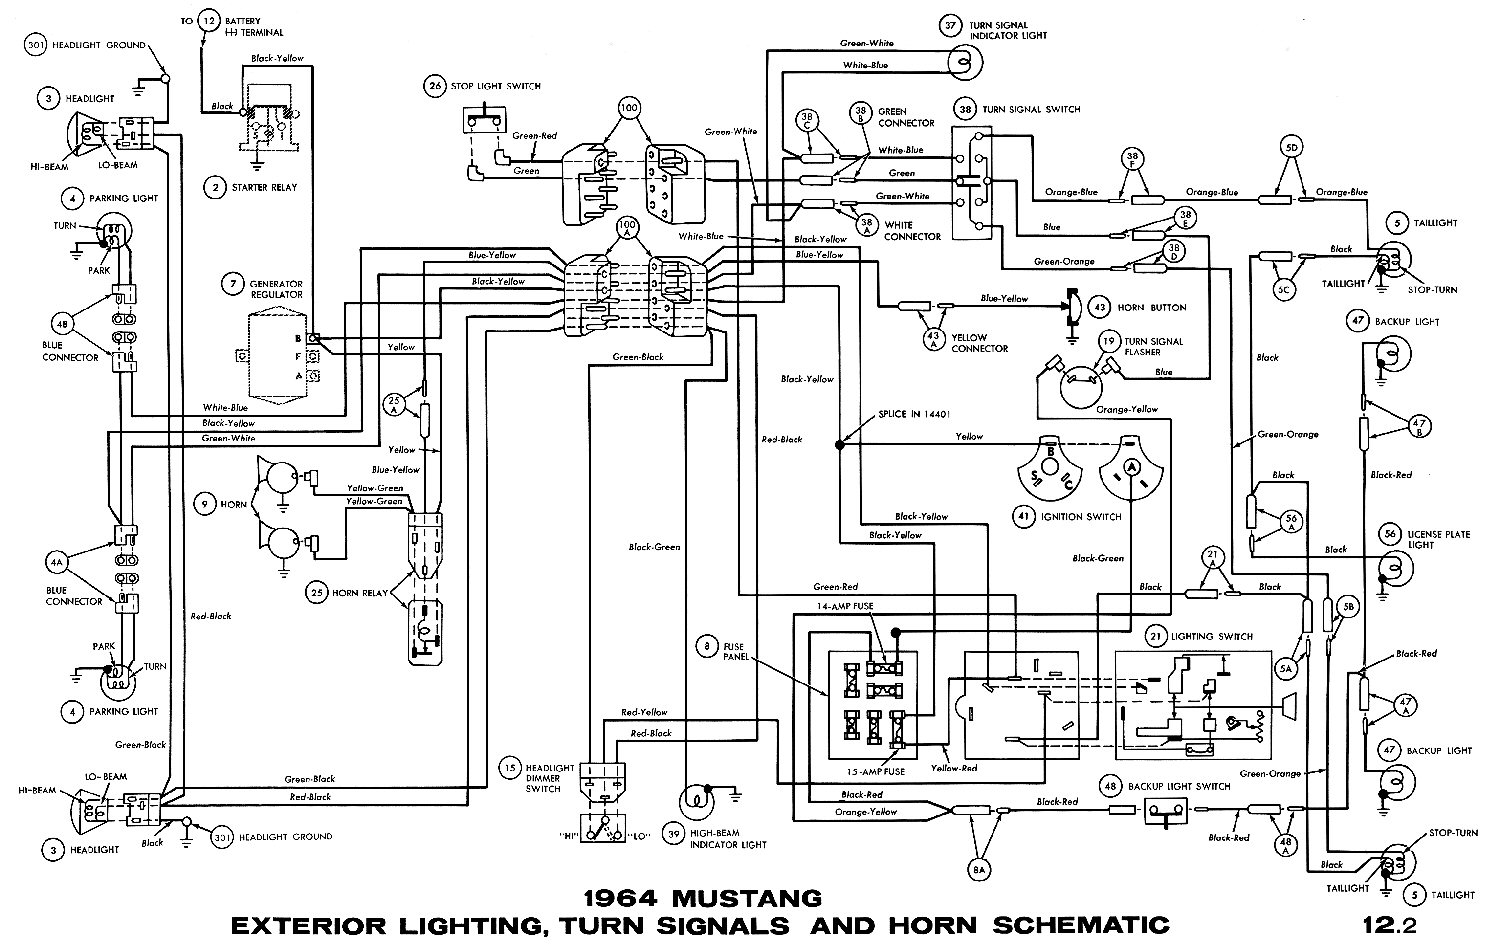 1968 Falcon Wiring Diagram Data Electrical For 1960 Chevrolet Corvair All Models 64 Galaxie Library Gibson